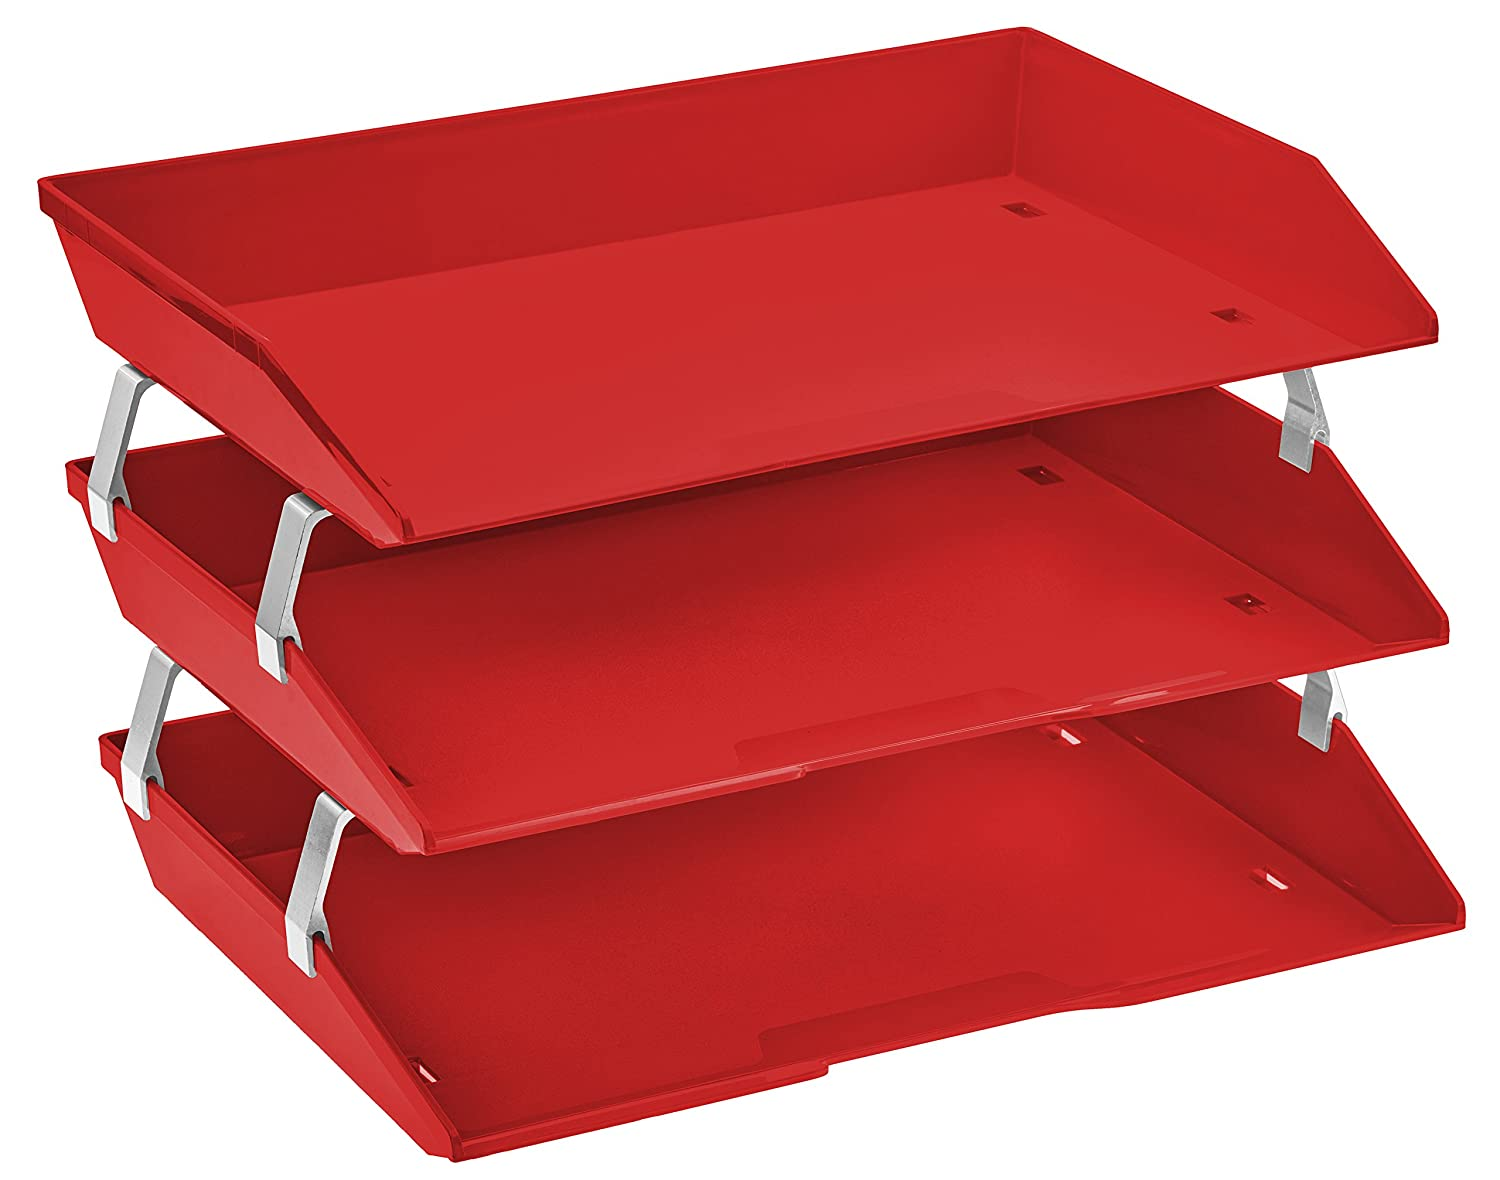 Acrimet Facility Triple Letter Tray (Solid Red Color)